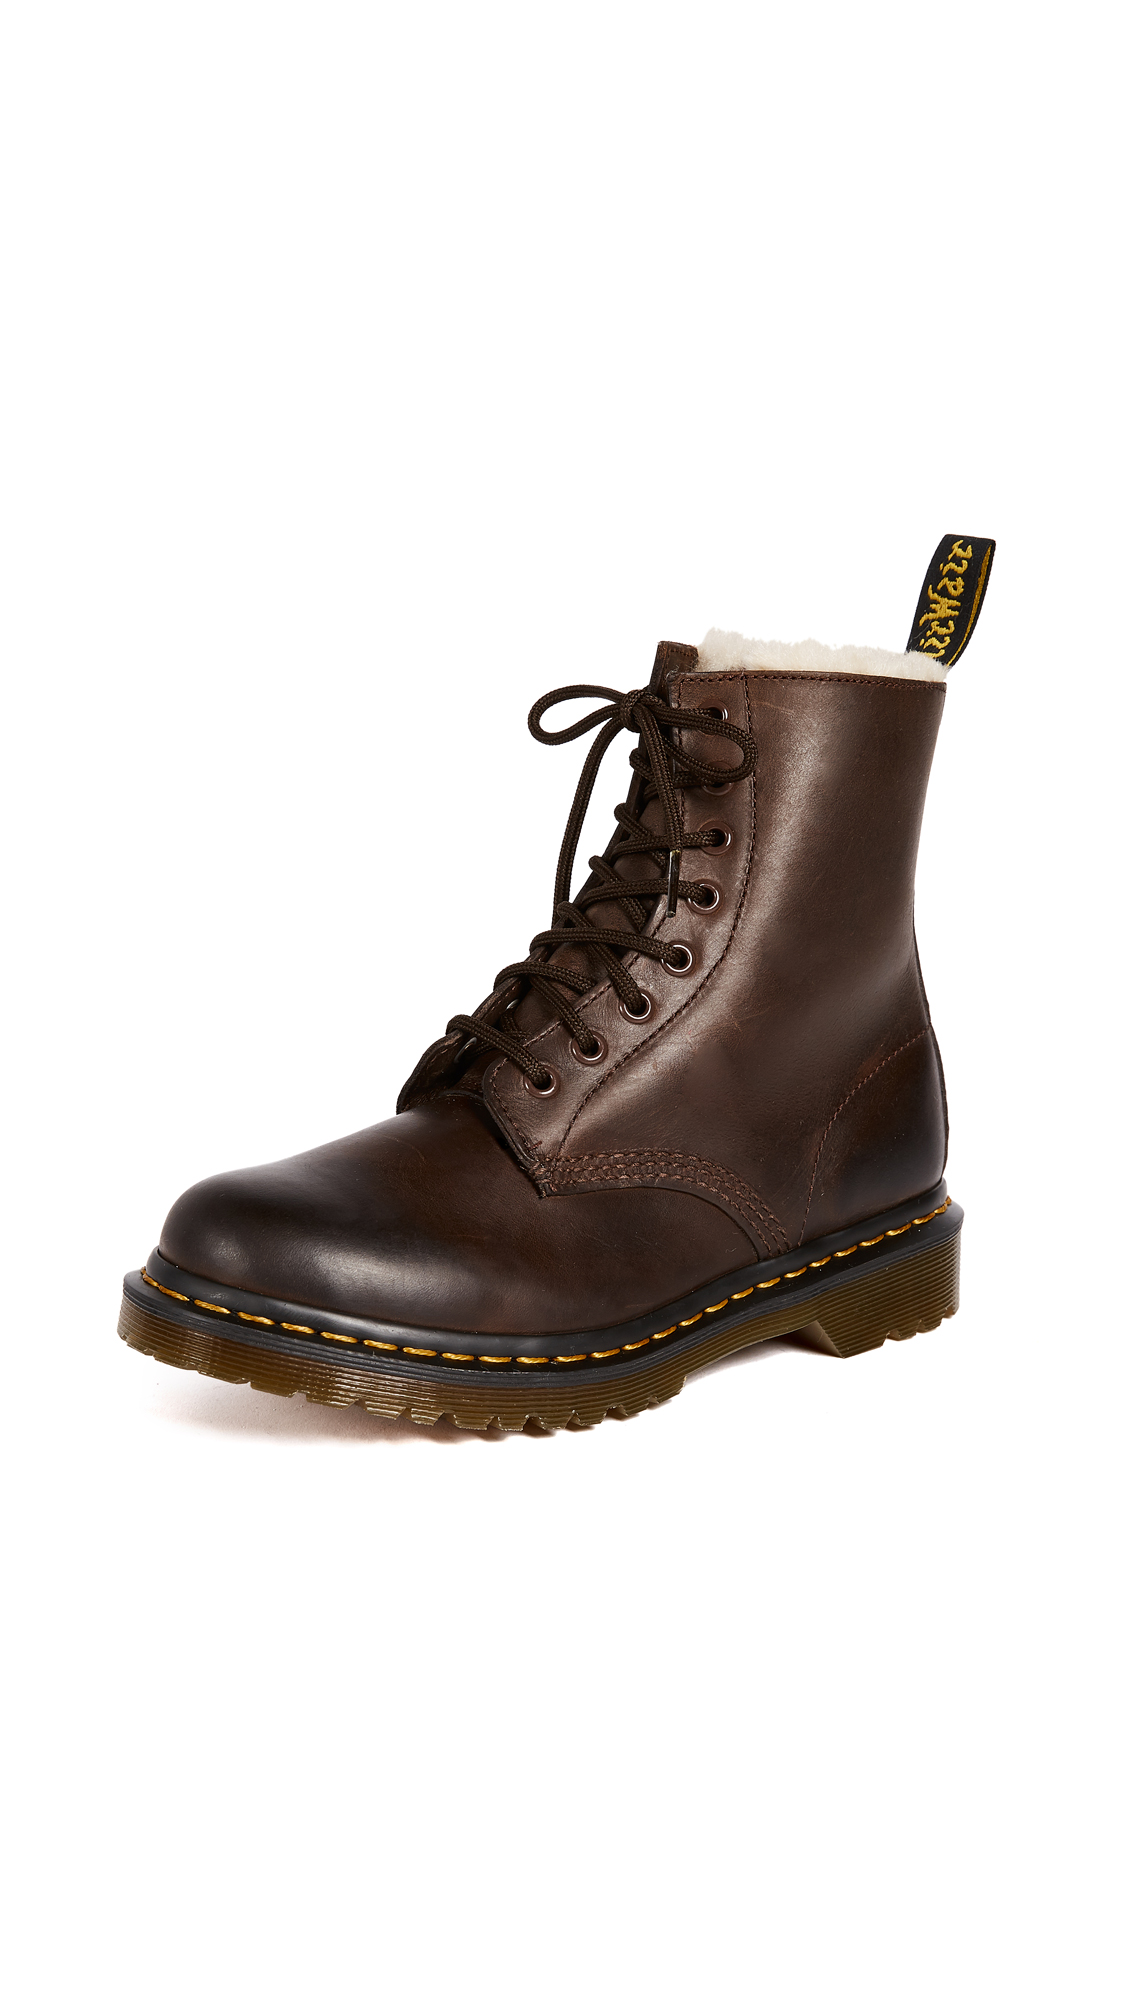 Dr. Martens Serena 8 Eye Sherpa Boots - Dark Brown